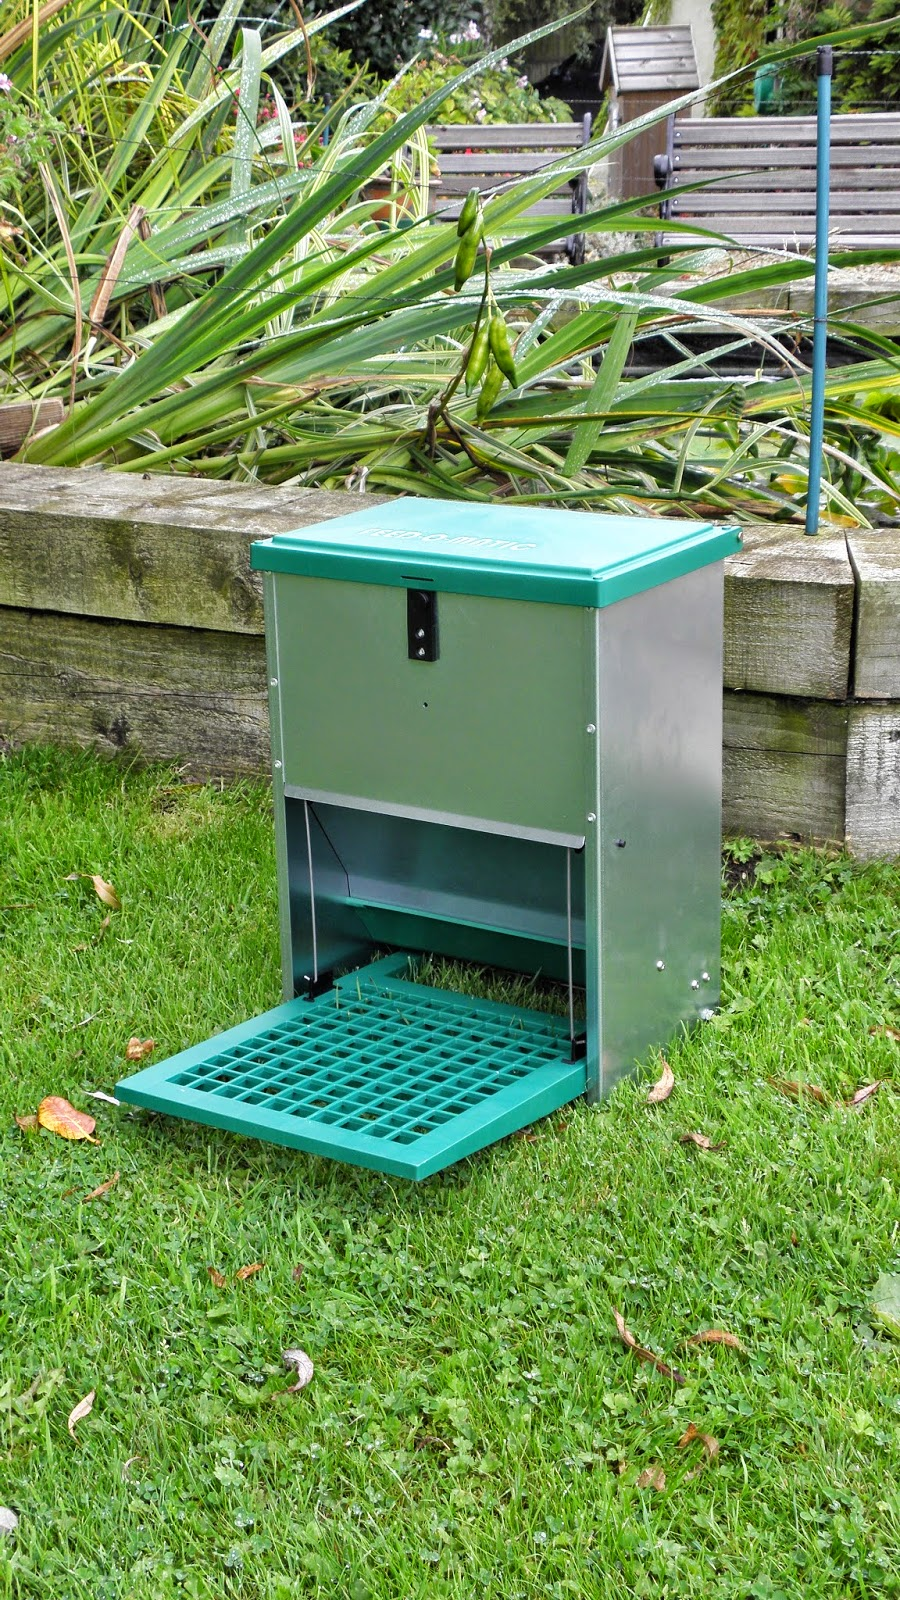 Anti-Vermin Feeders for Chickens